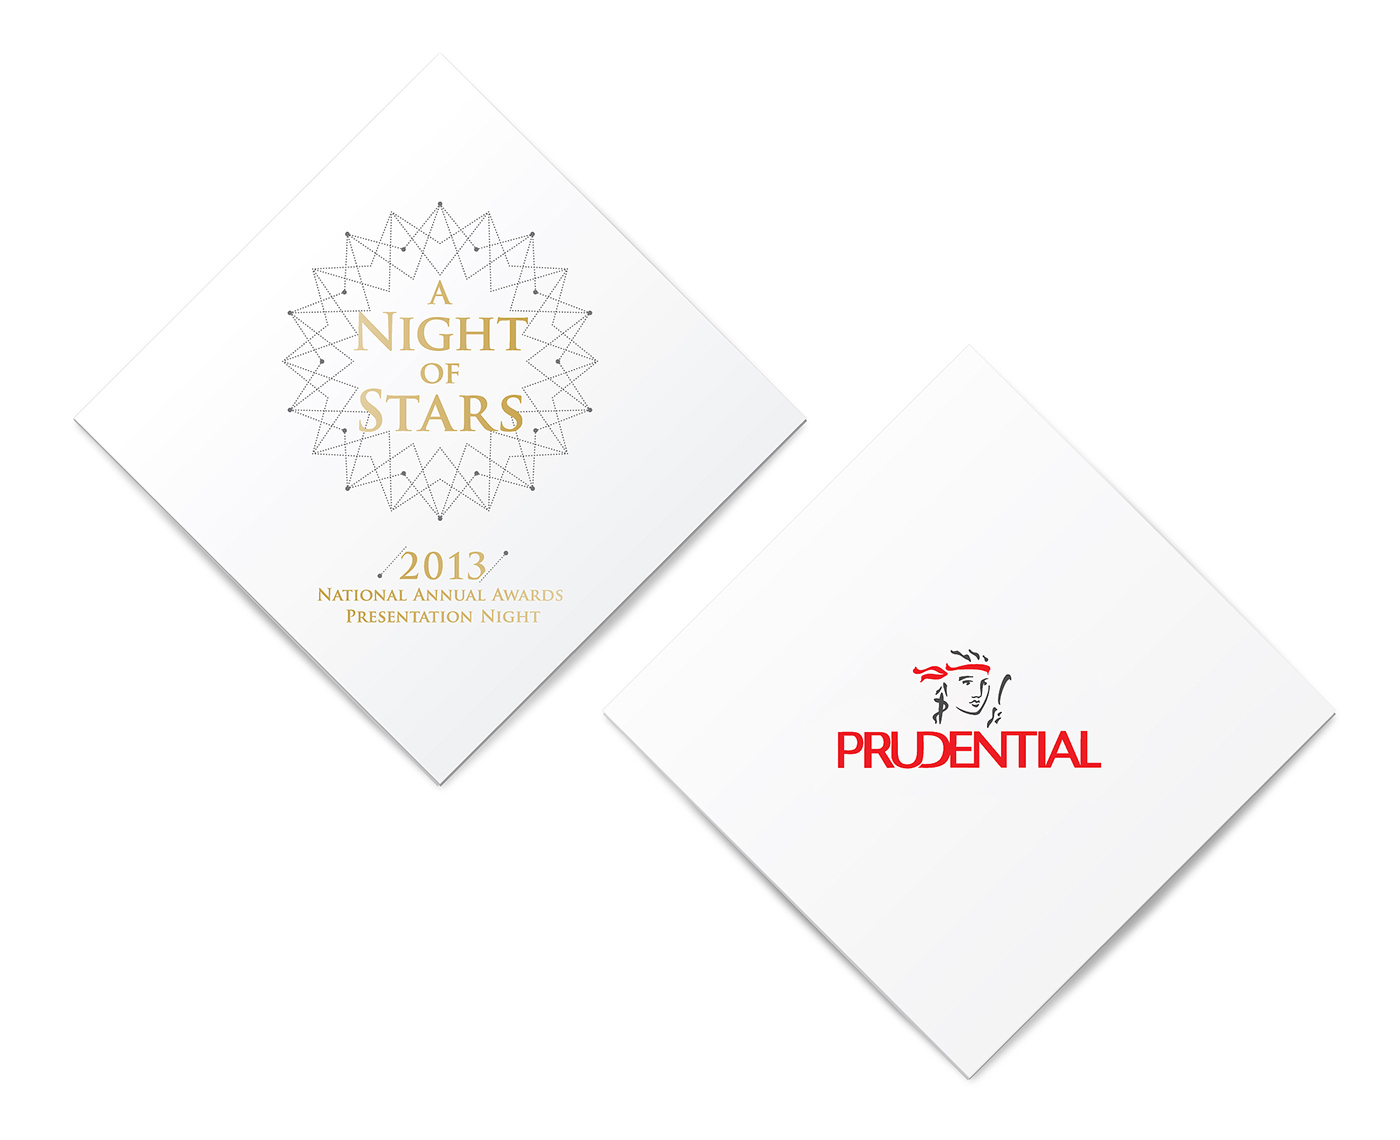 Prudential National Annual Awards Night 2013 on Behance